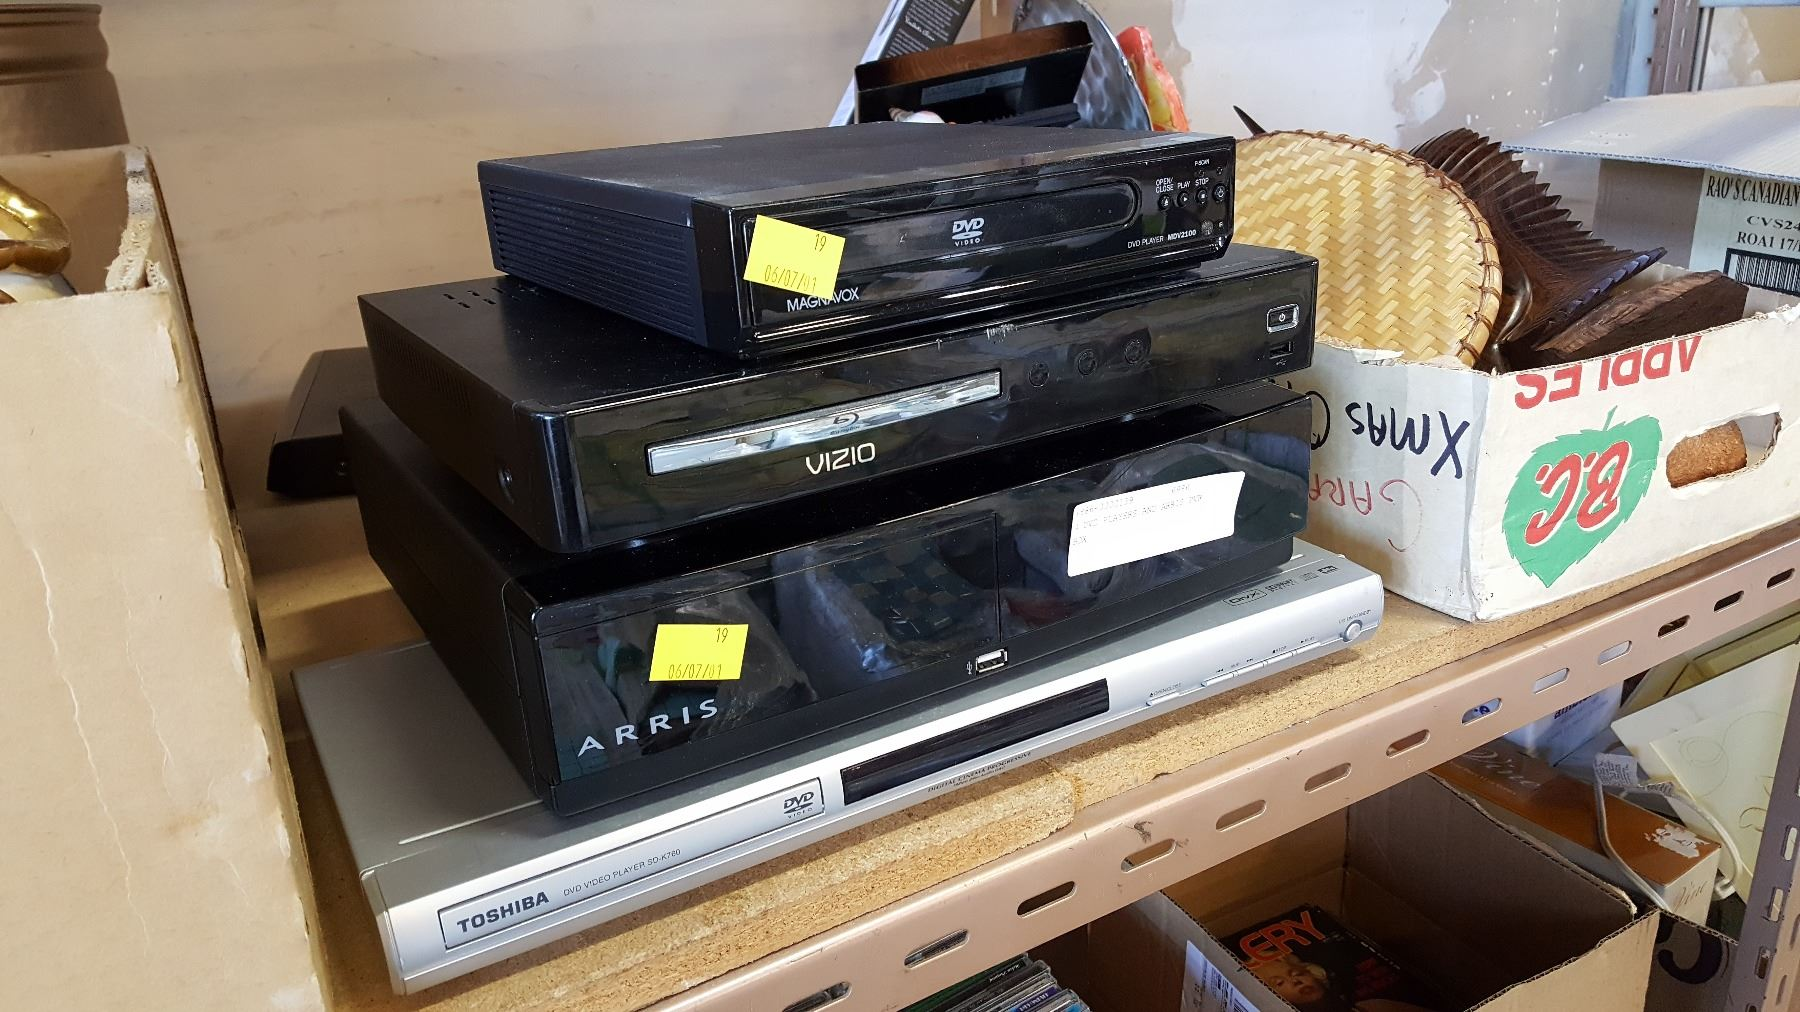 4 DVD PLAYERS AND ARRIS PVR BOX